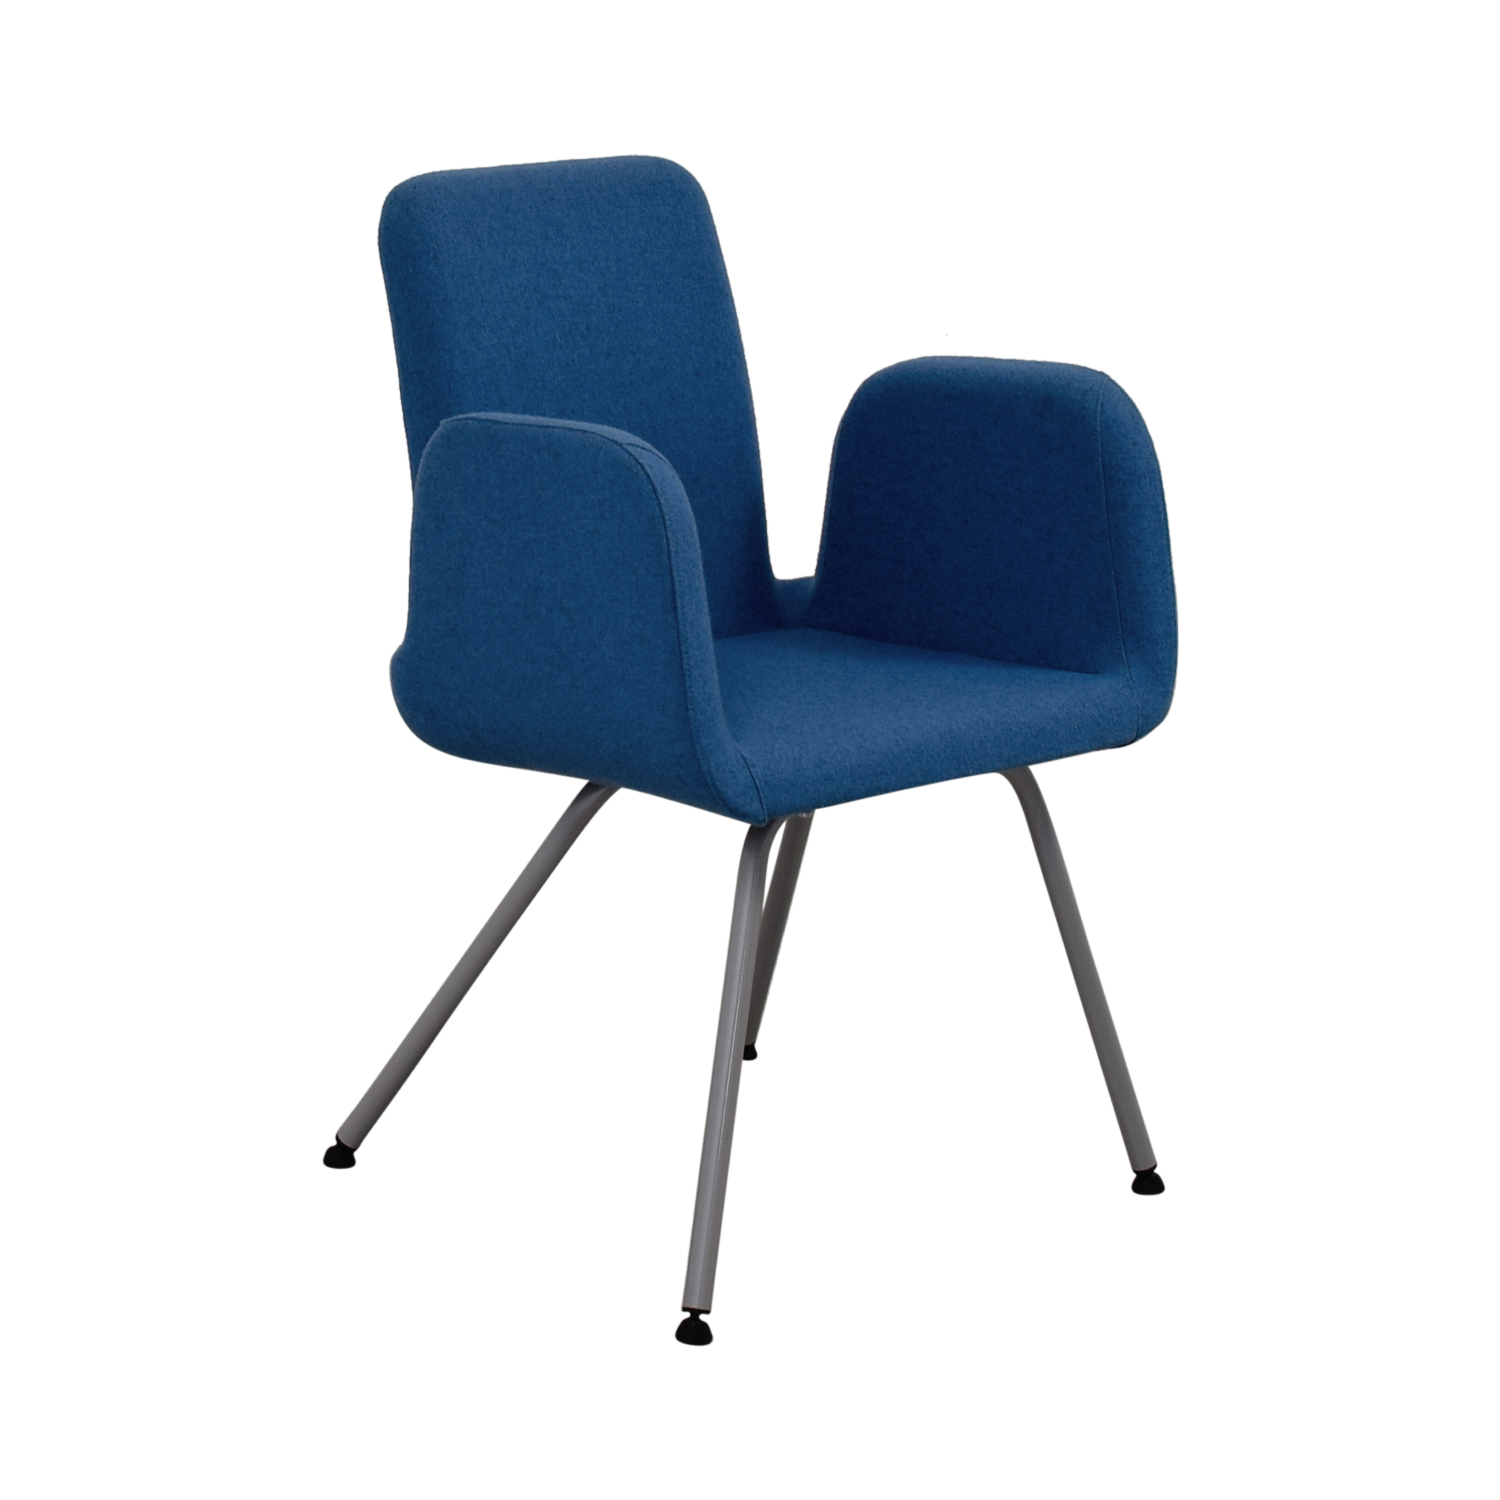 89 Off Ikea Ikea Patrik Blue Conference Chair Chairs